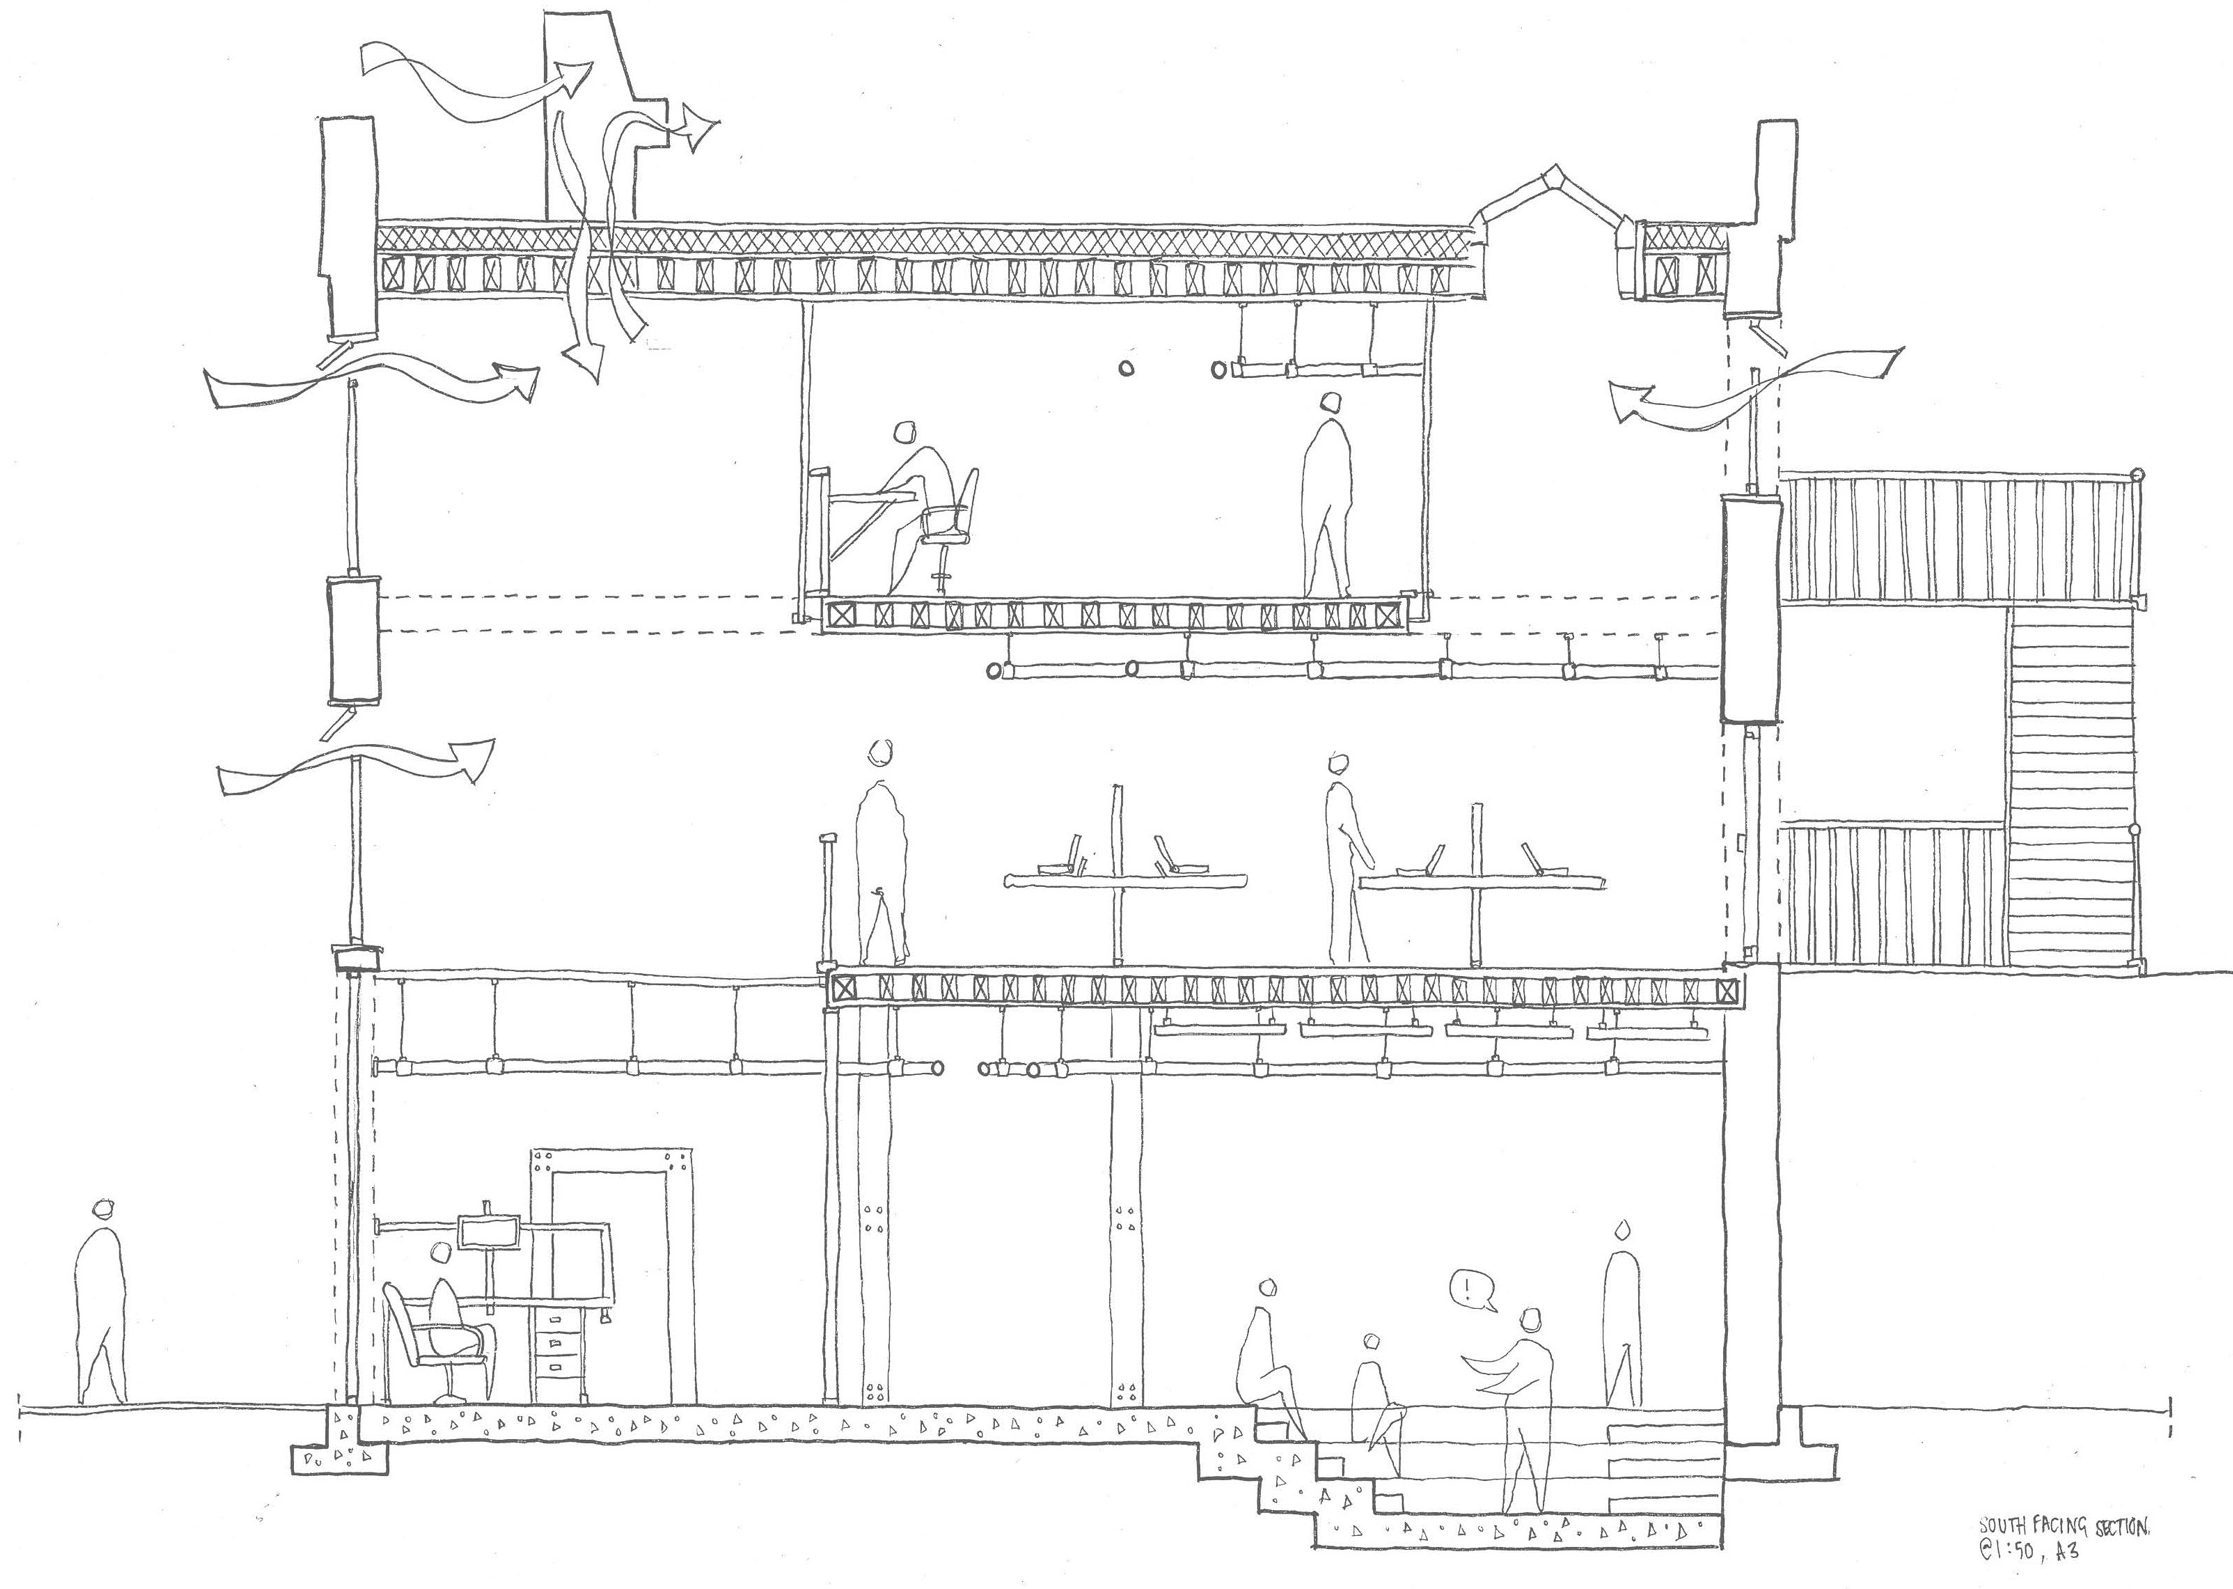 An architectural illustration of a house